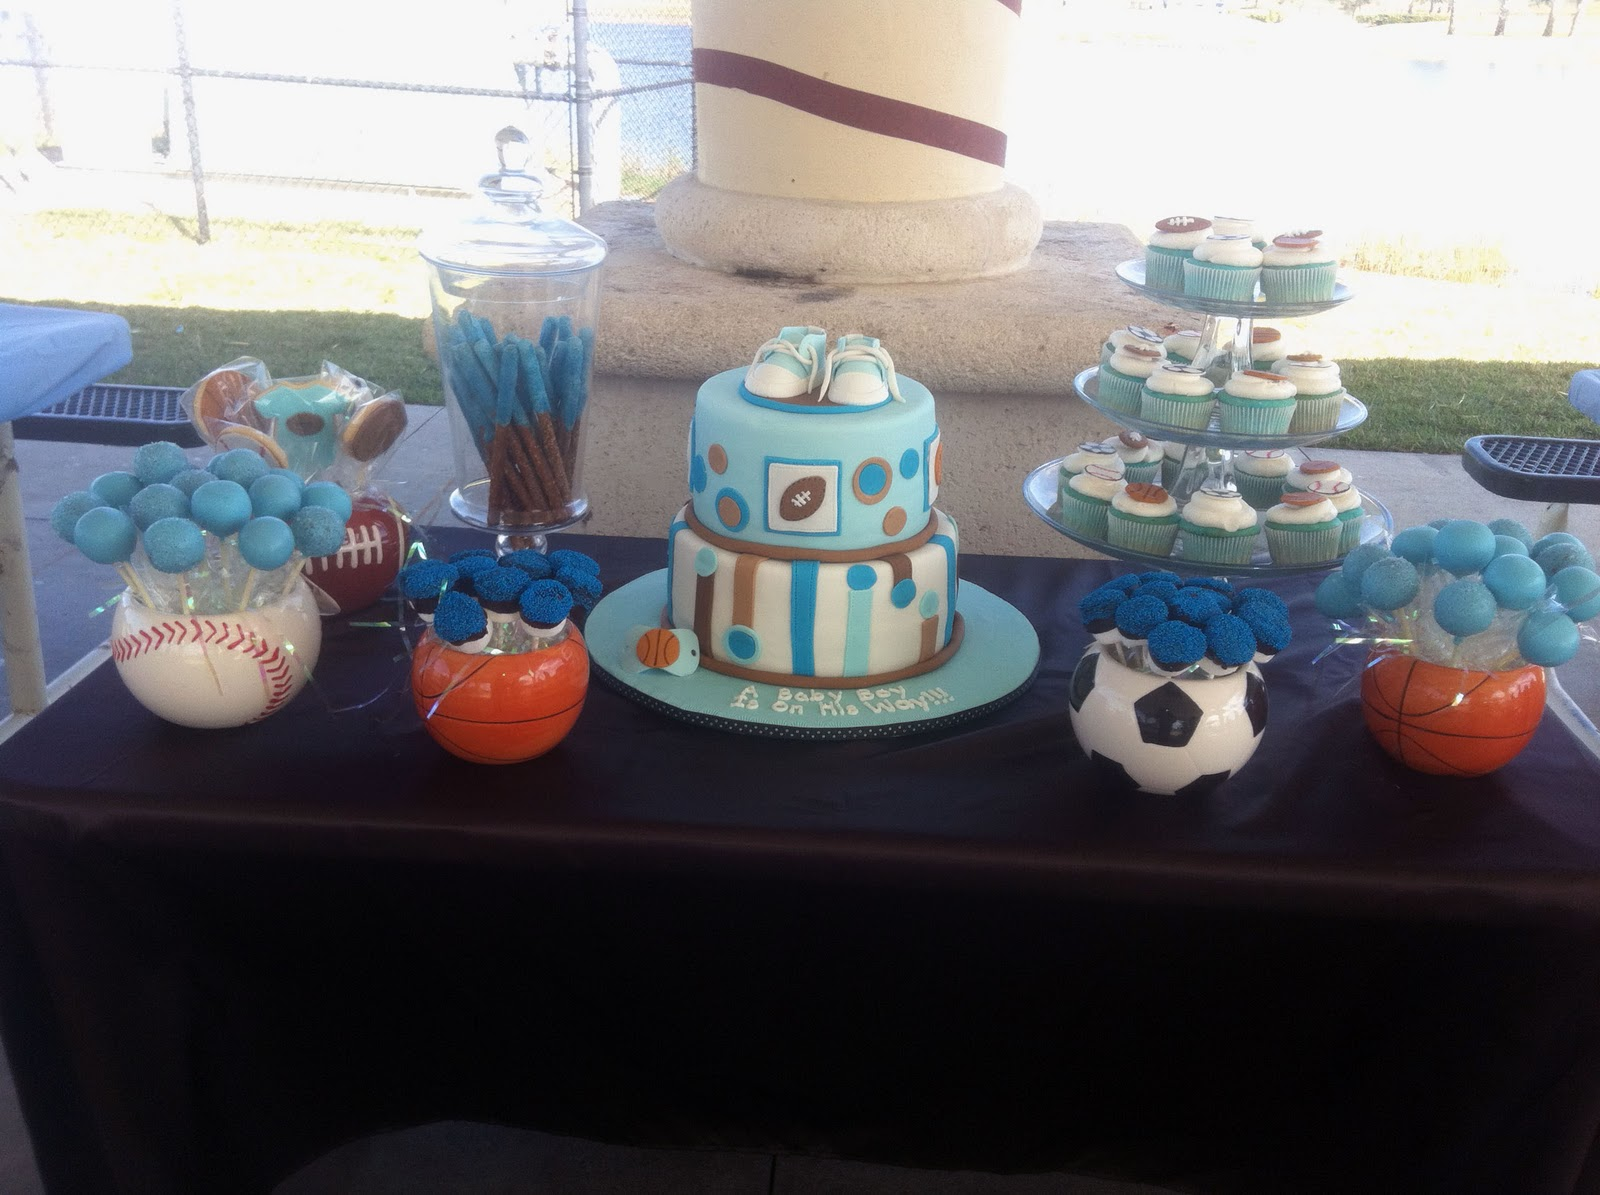 Leelees Cake-abilities: All Star Sports Theme Cake and Goodies